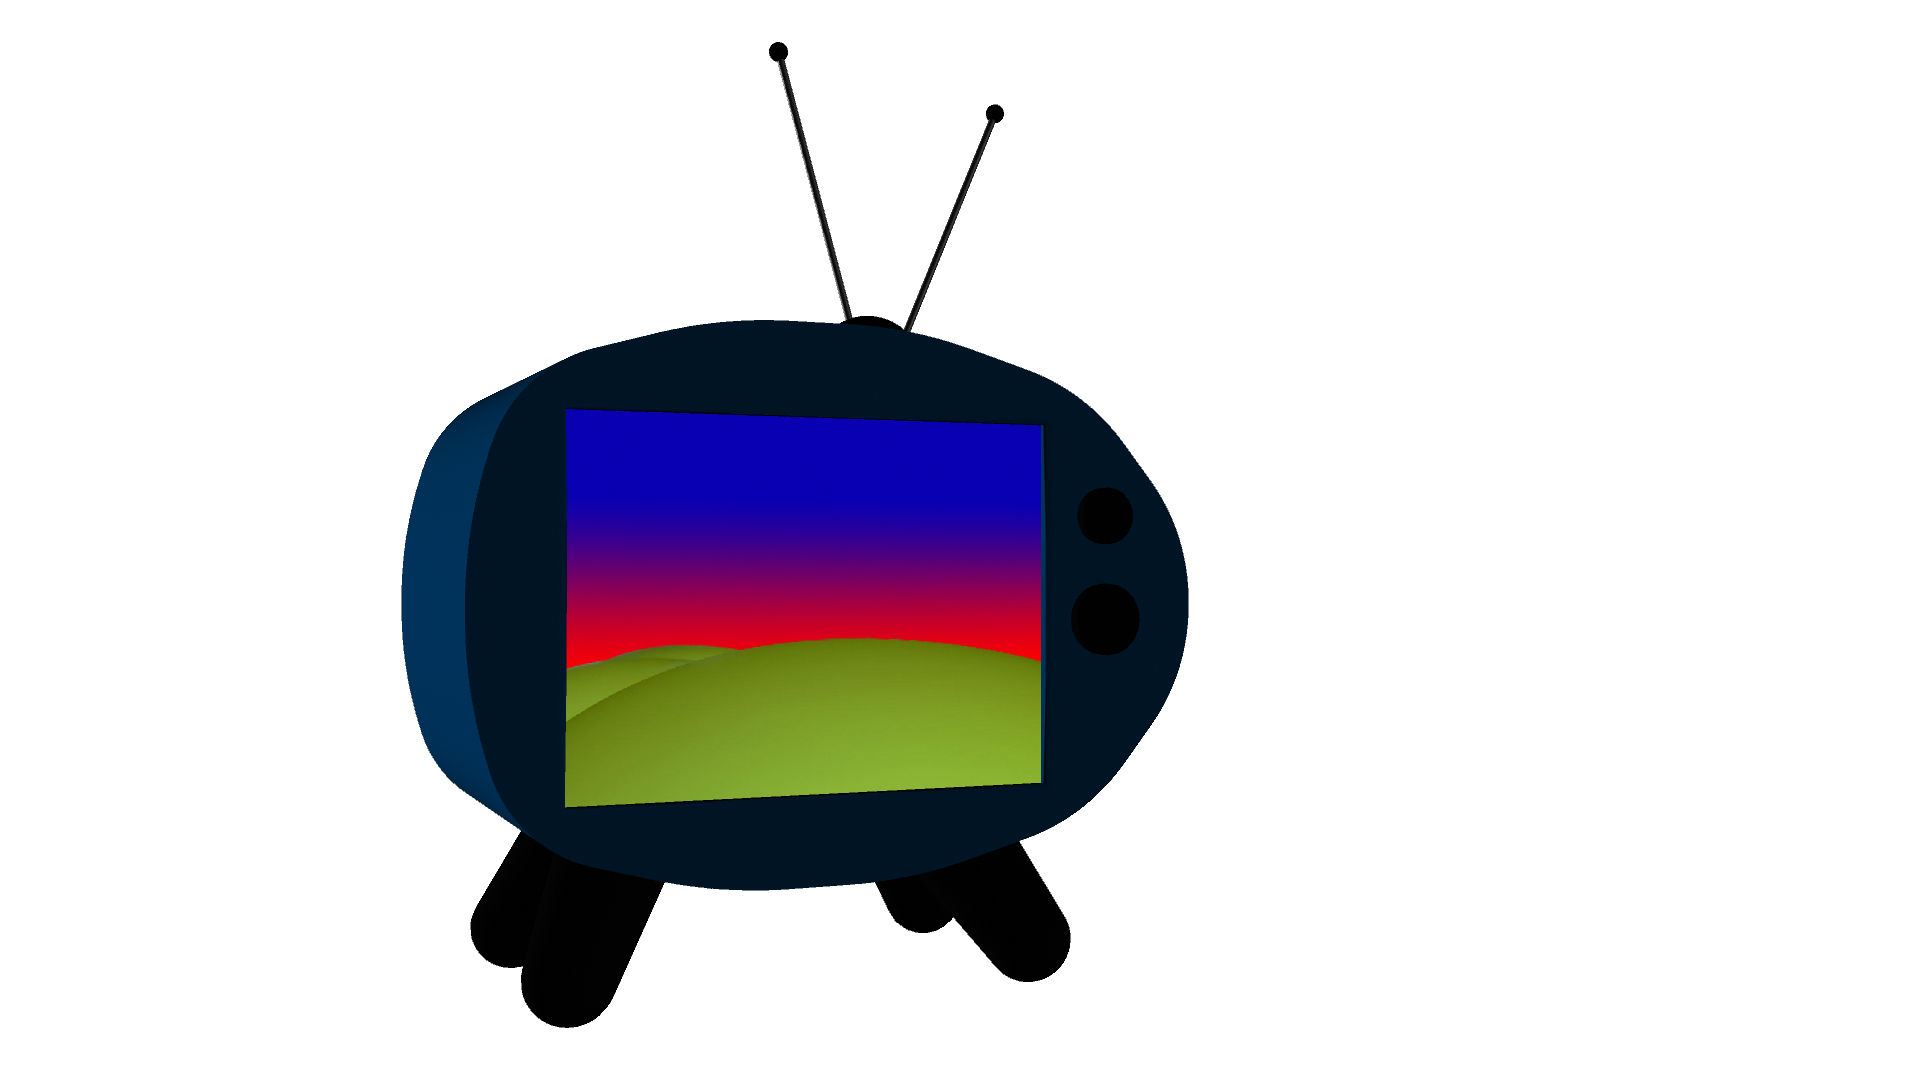 Clipart tv telly. Lewis cole s game